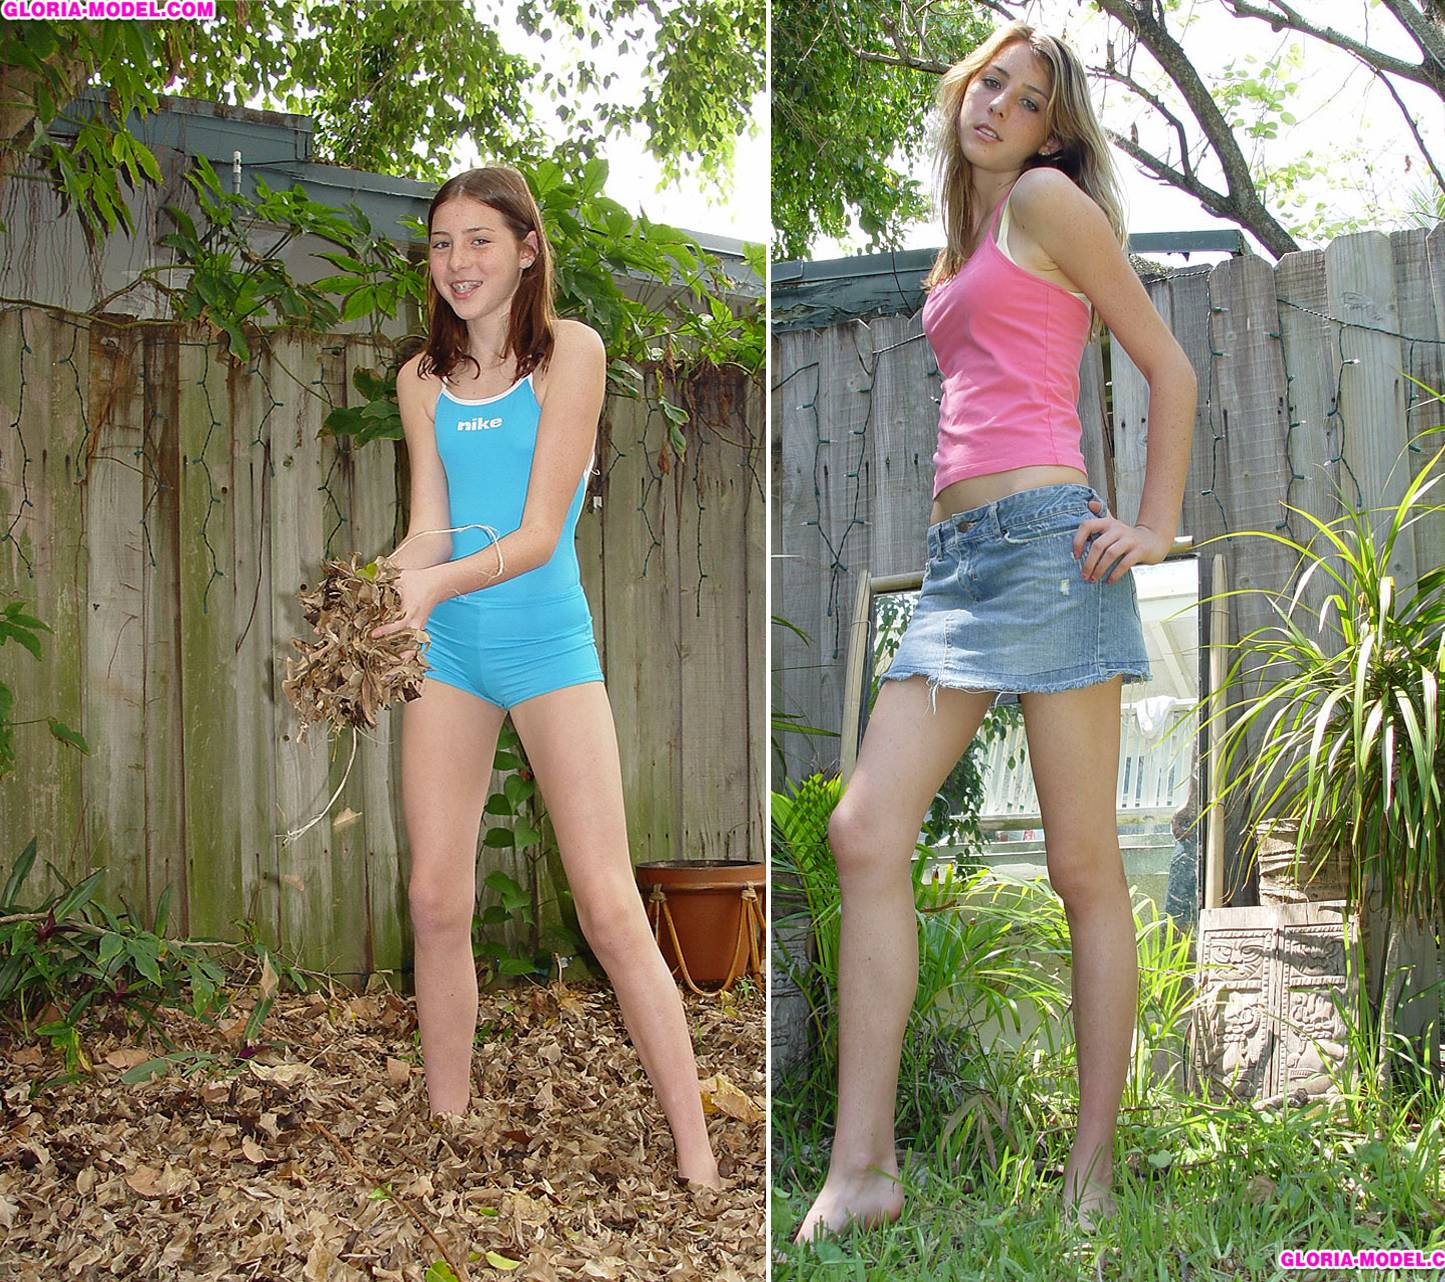 Phoebe Teen Model http://www.oocities.org/visible_time/OLD_UPDATE37.htm